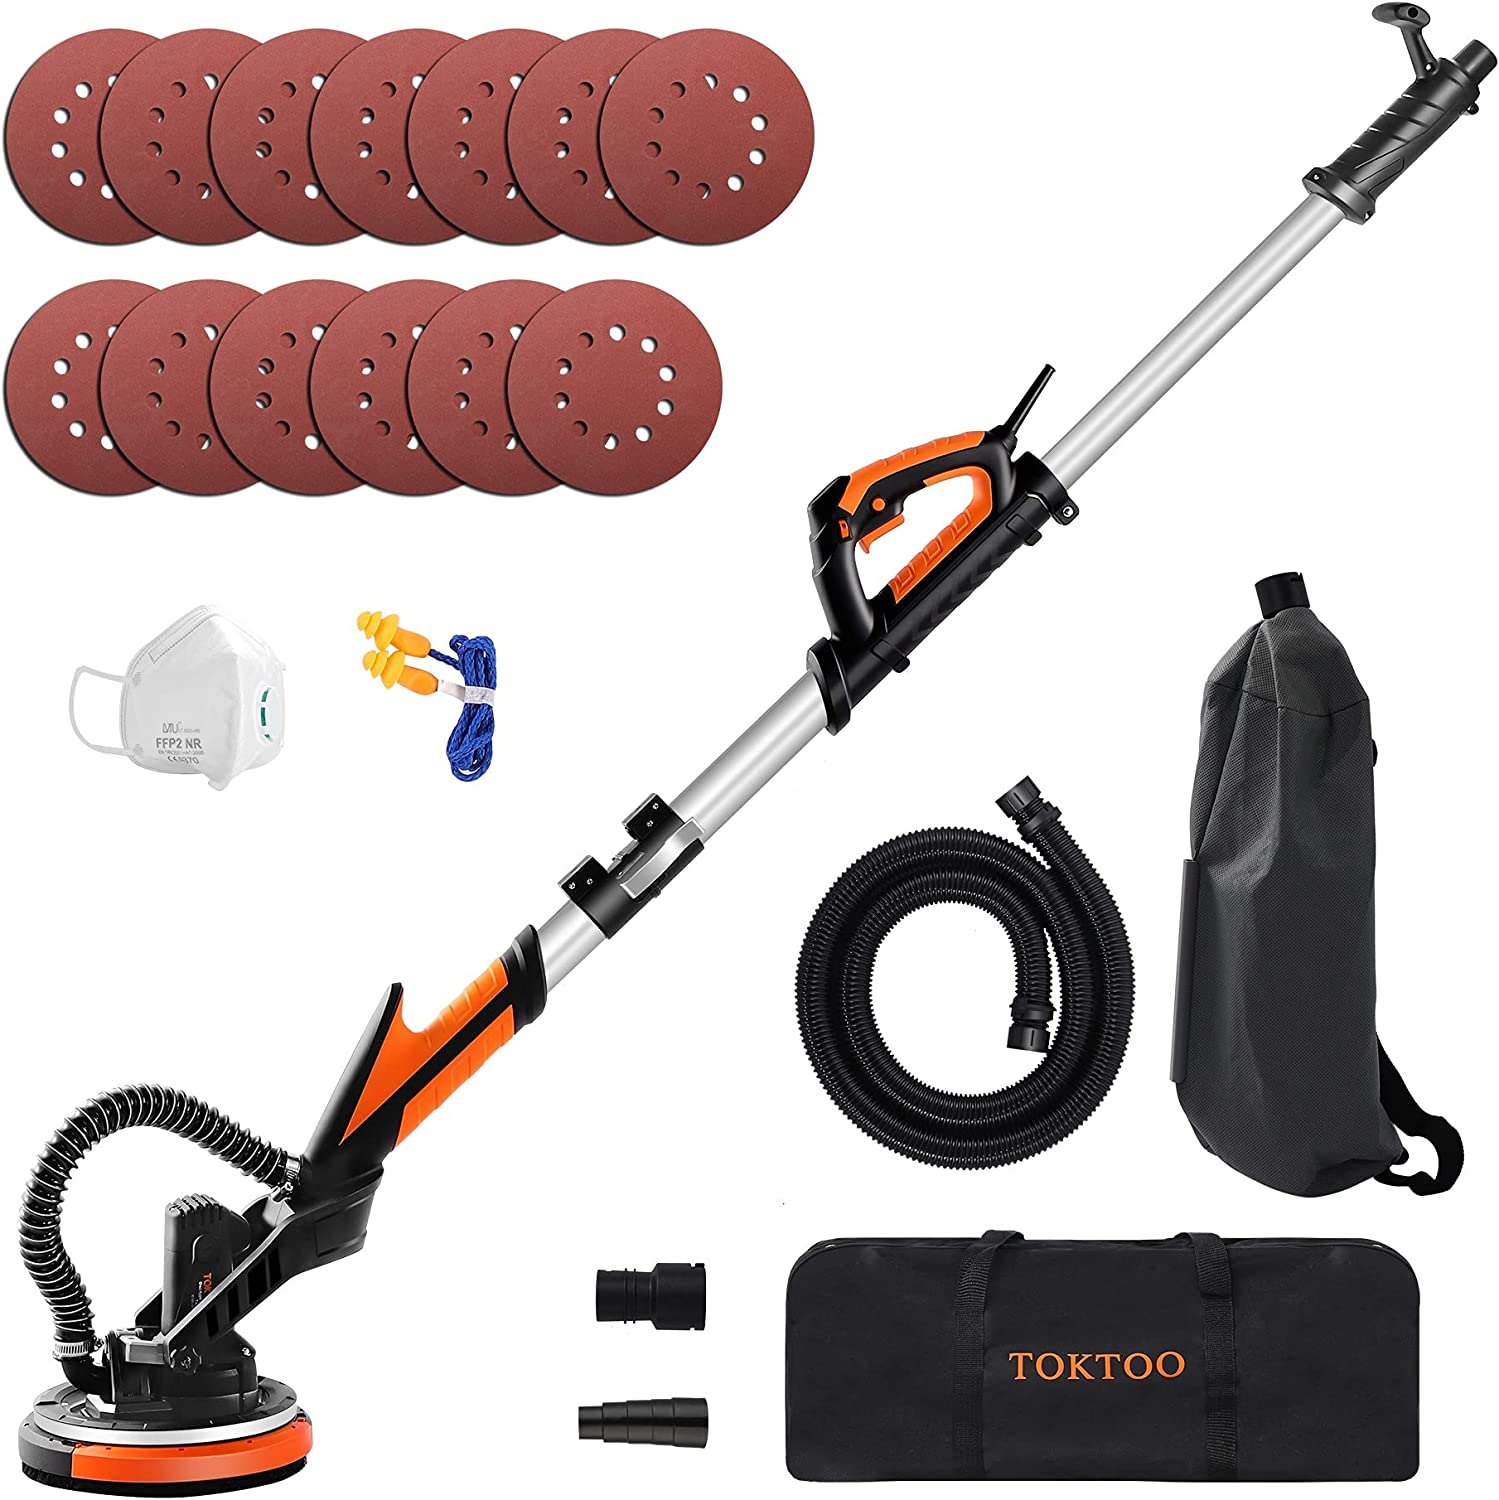 TOKTOO Drywall Sander 750W Electric Attachme Ranking TOP11 with Popular products Vacuum